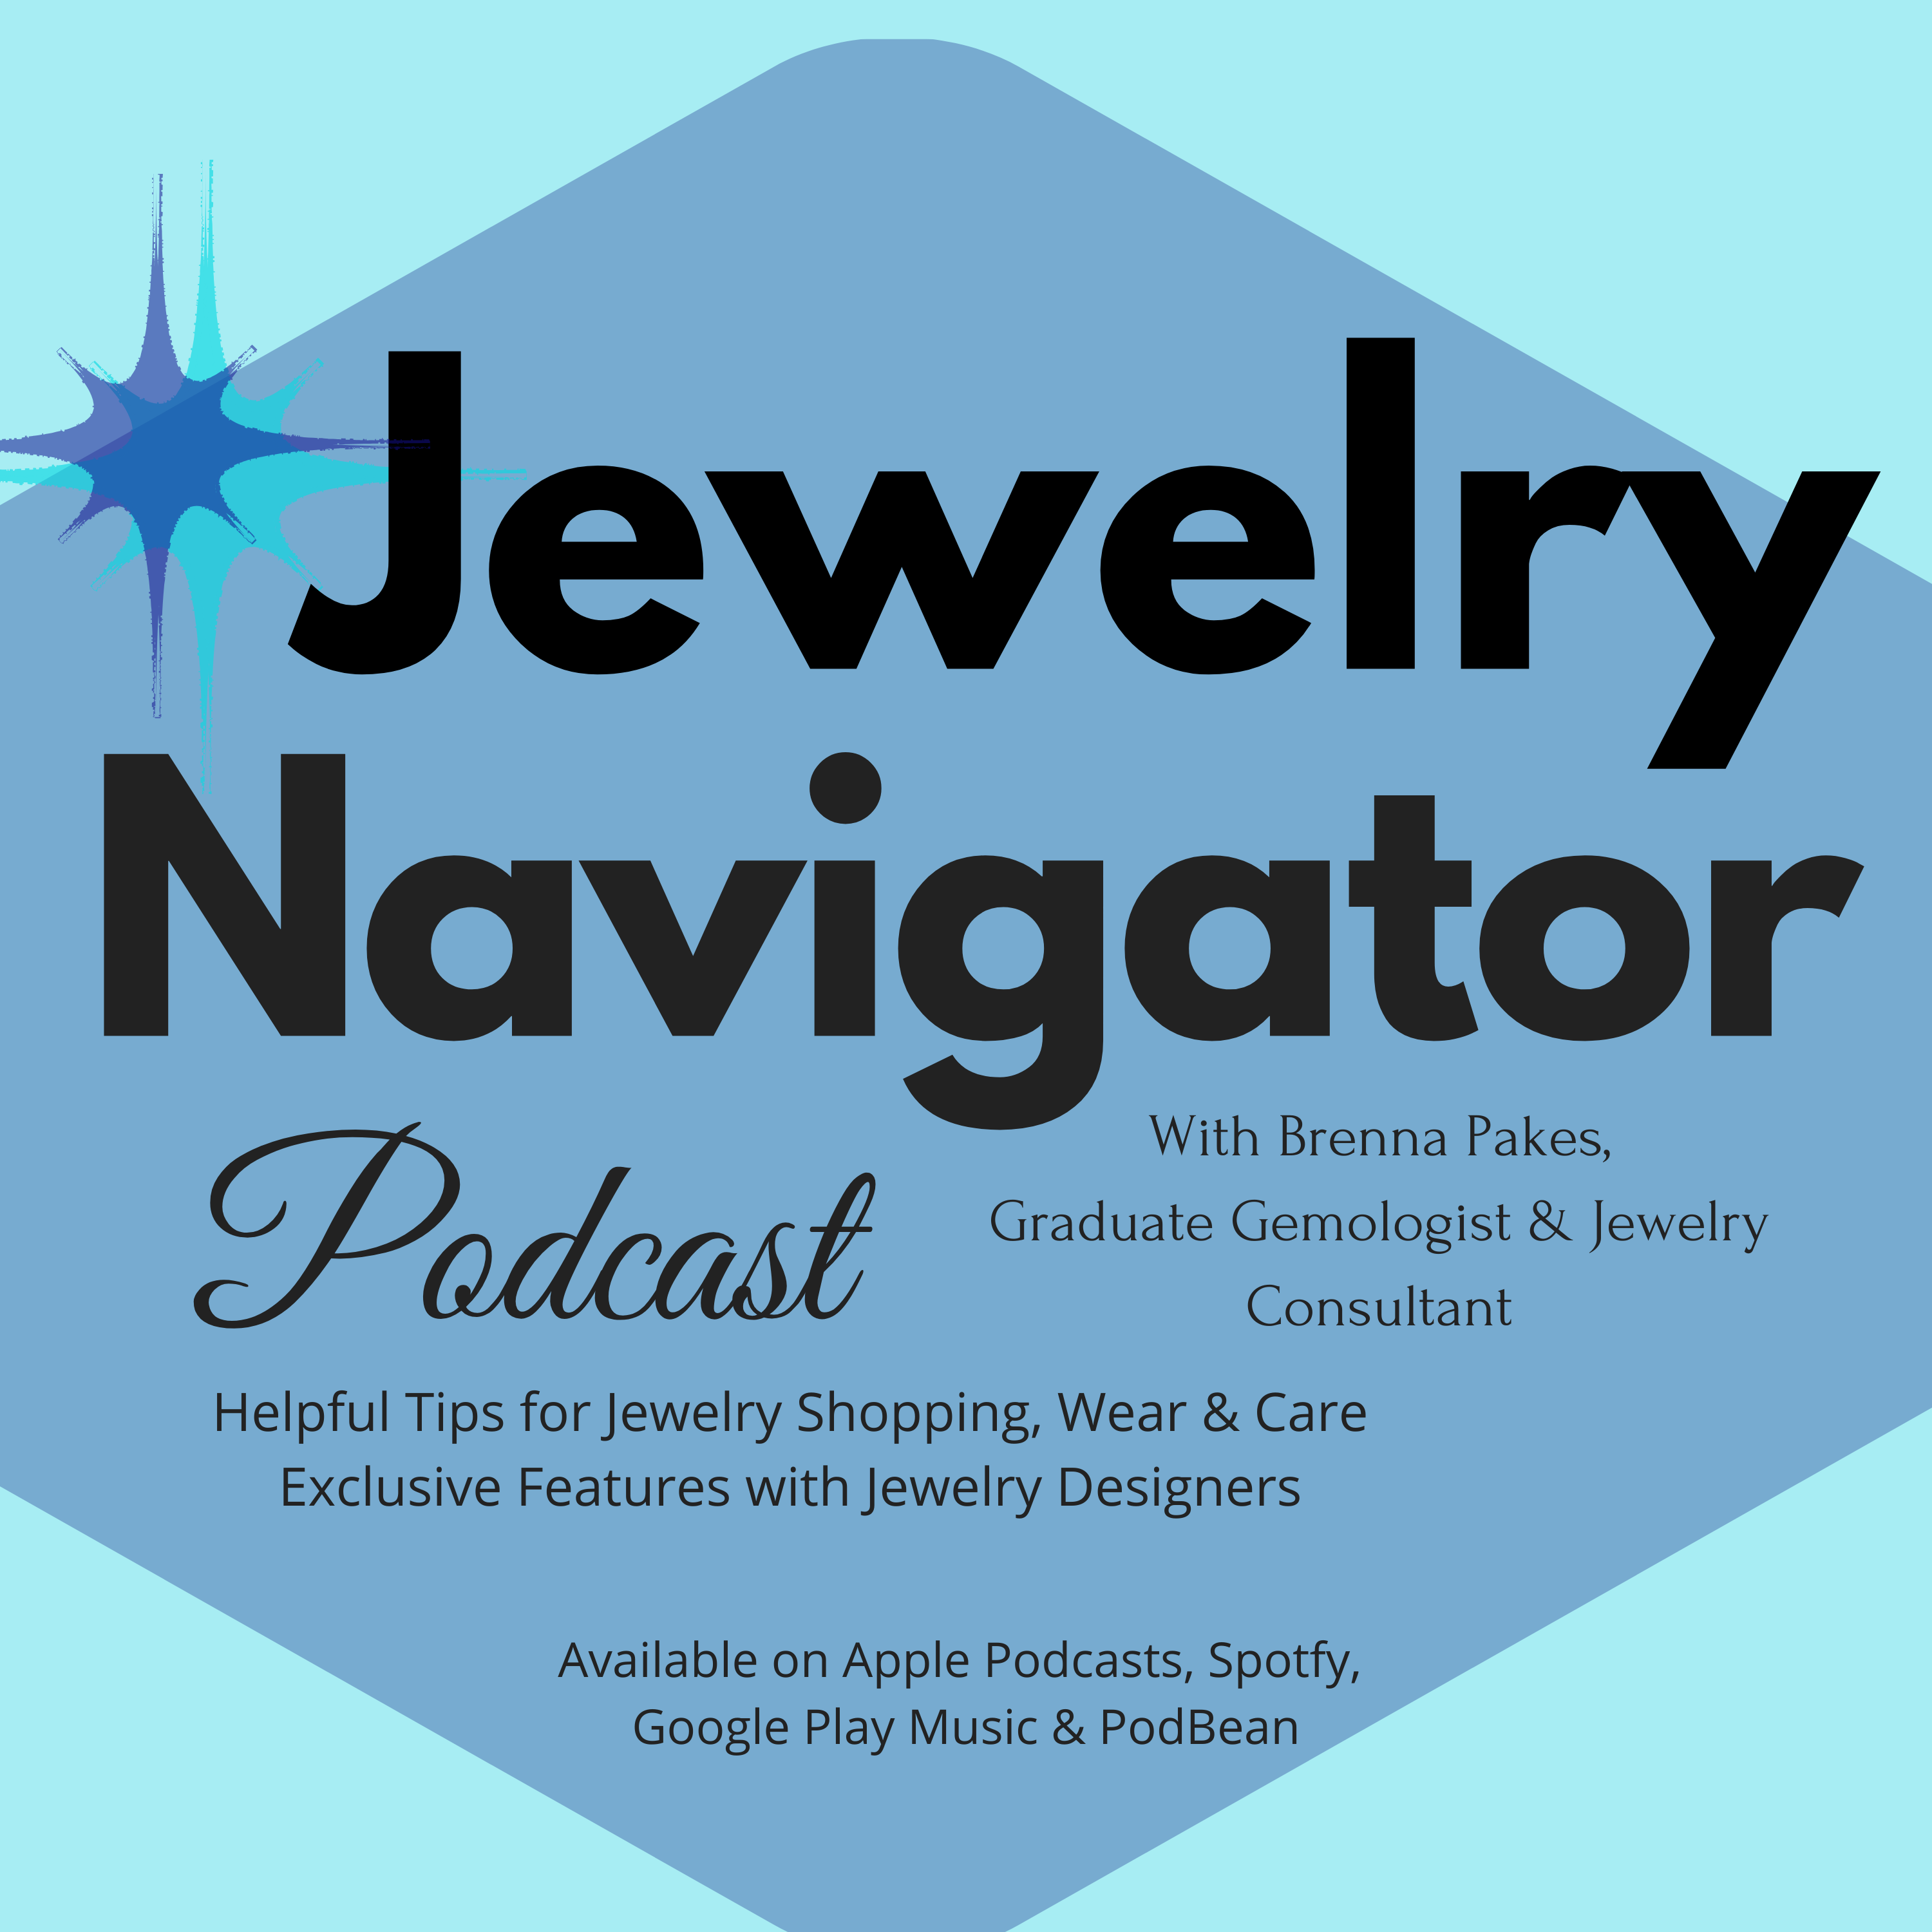 Jewelry Navigator Podcast